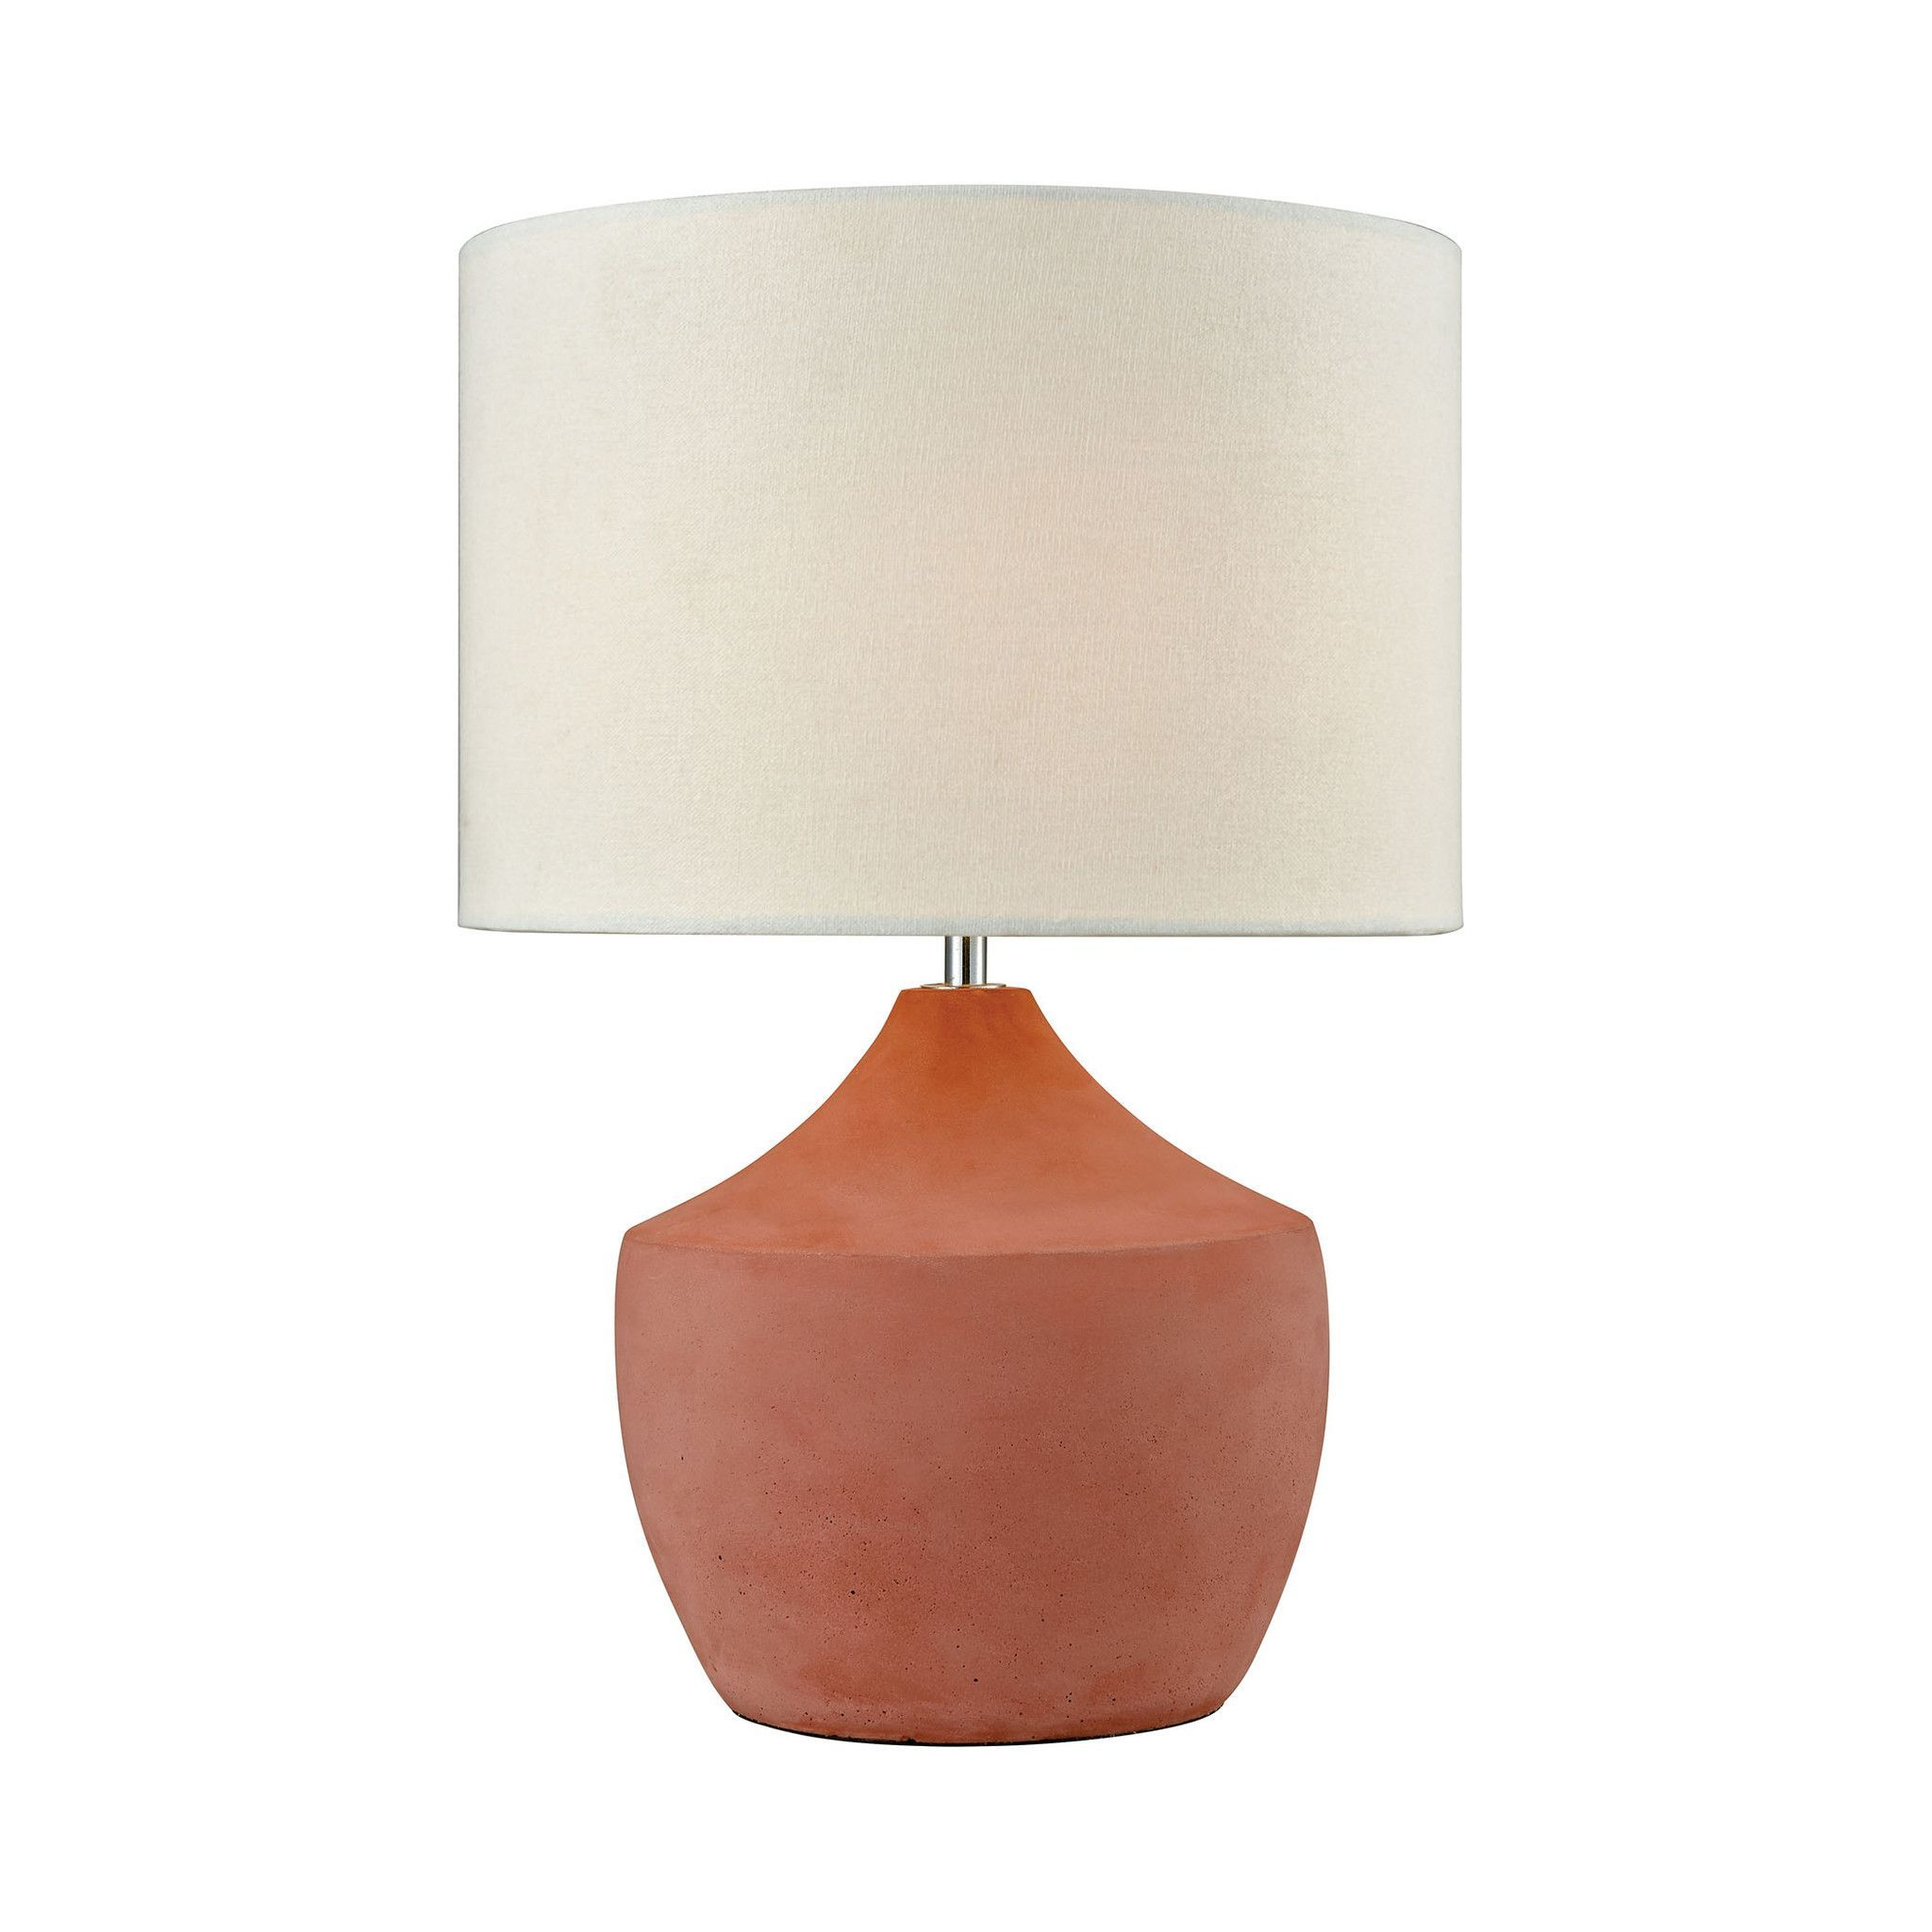 Curacao Table Lamp   Coral Coral